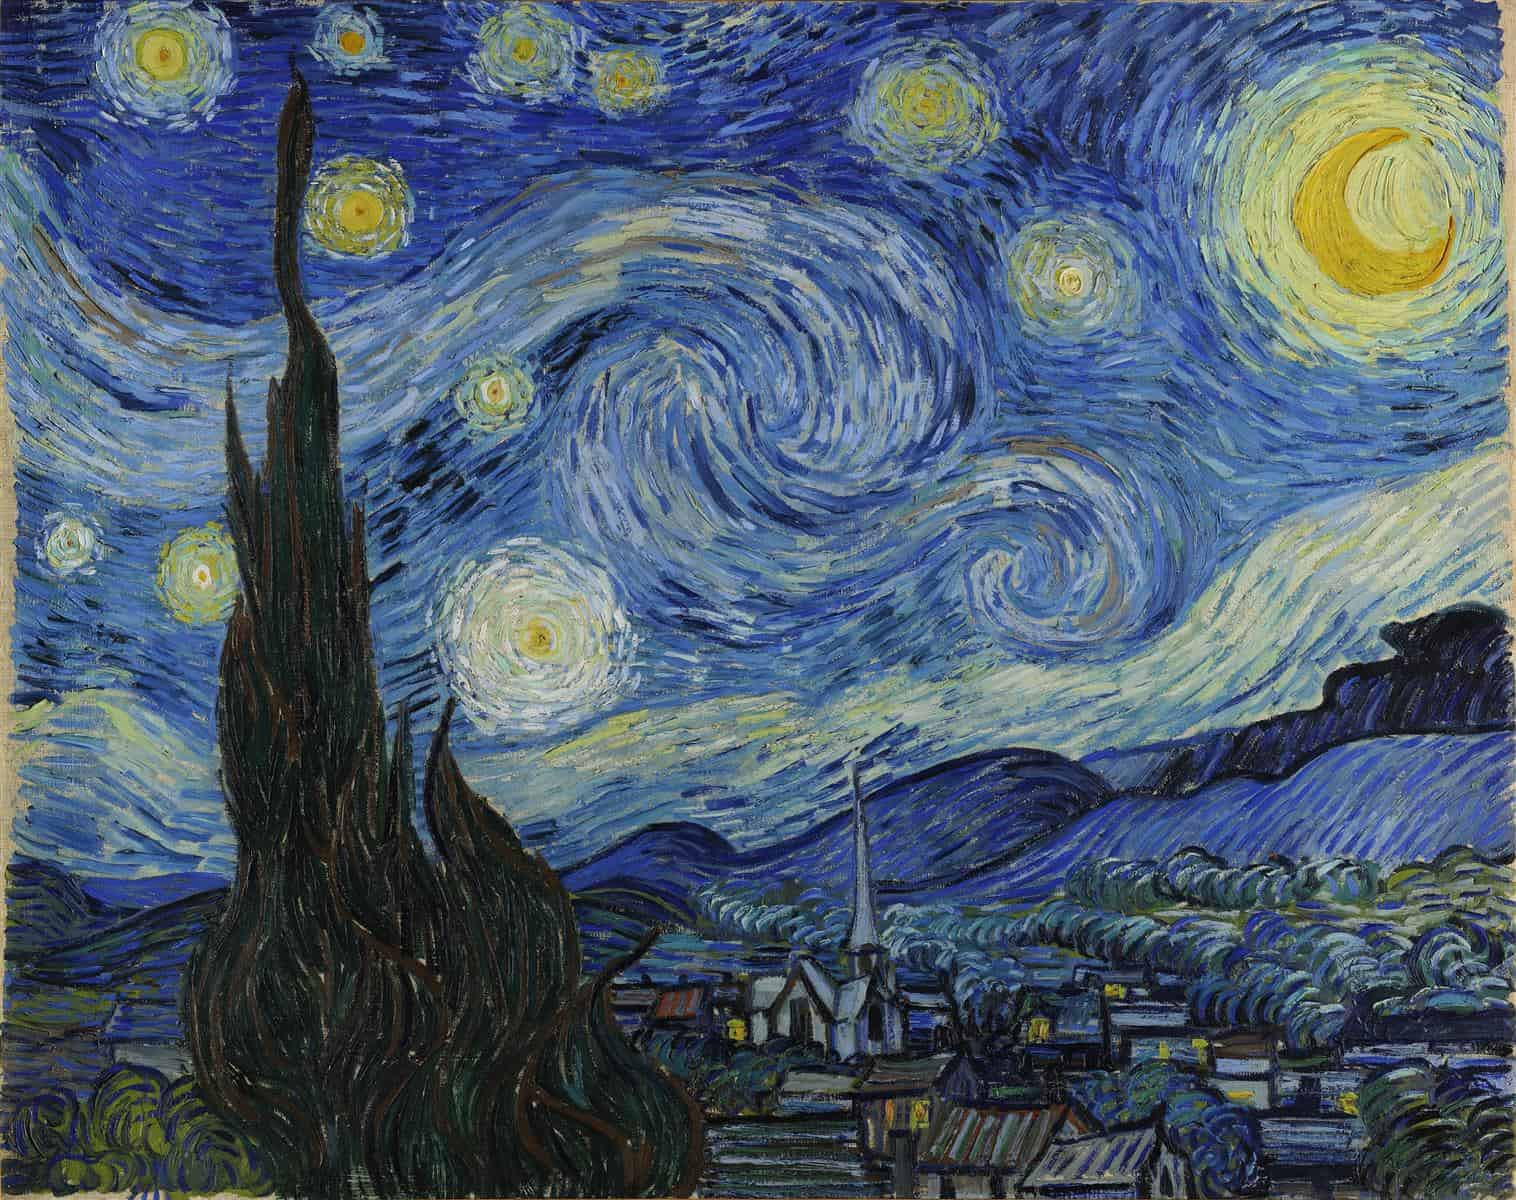 The Starry Night in Vincent van Gogh Biography for Kids